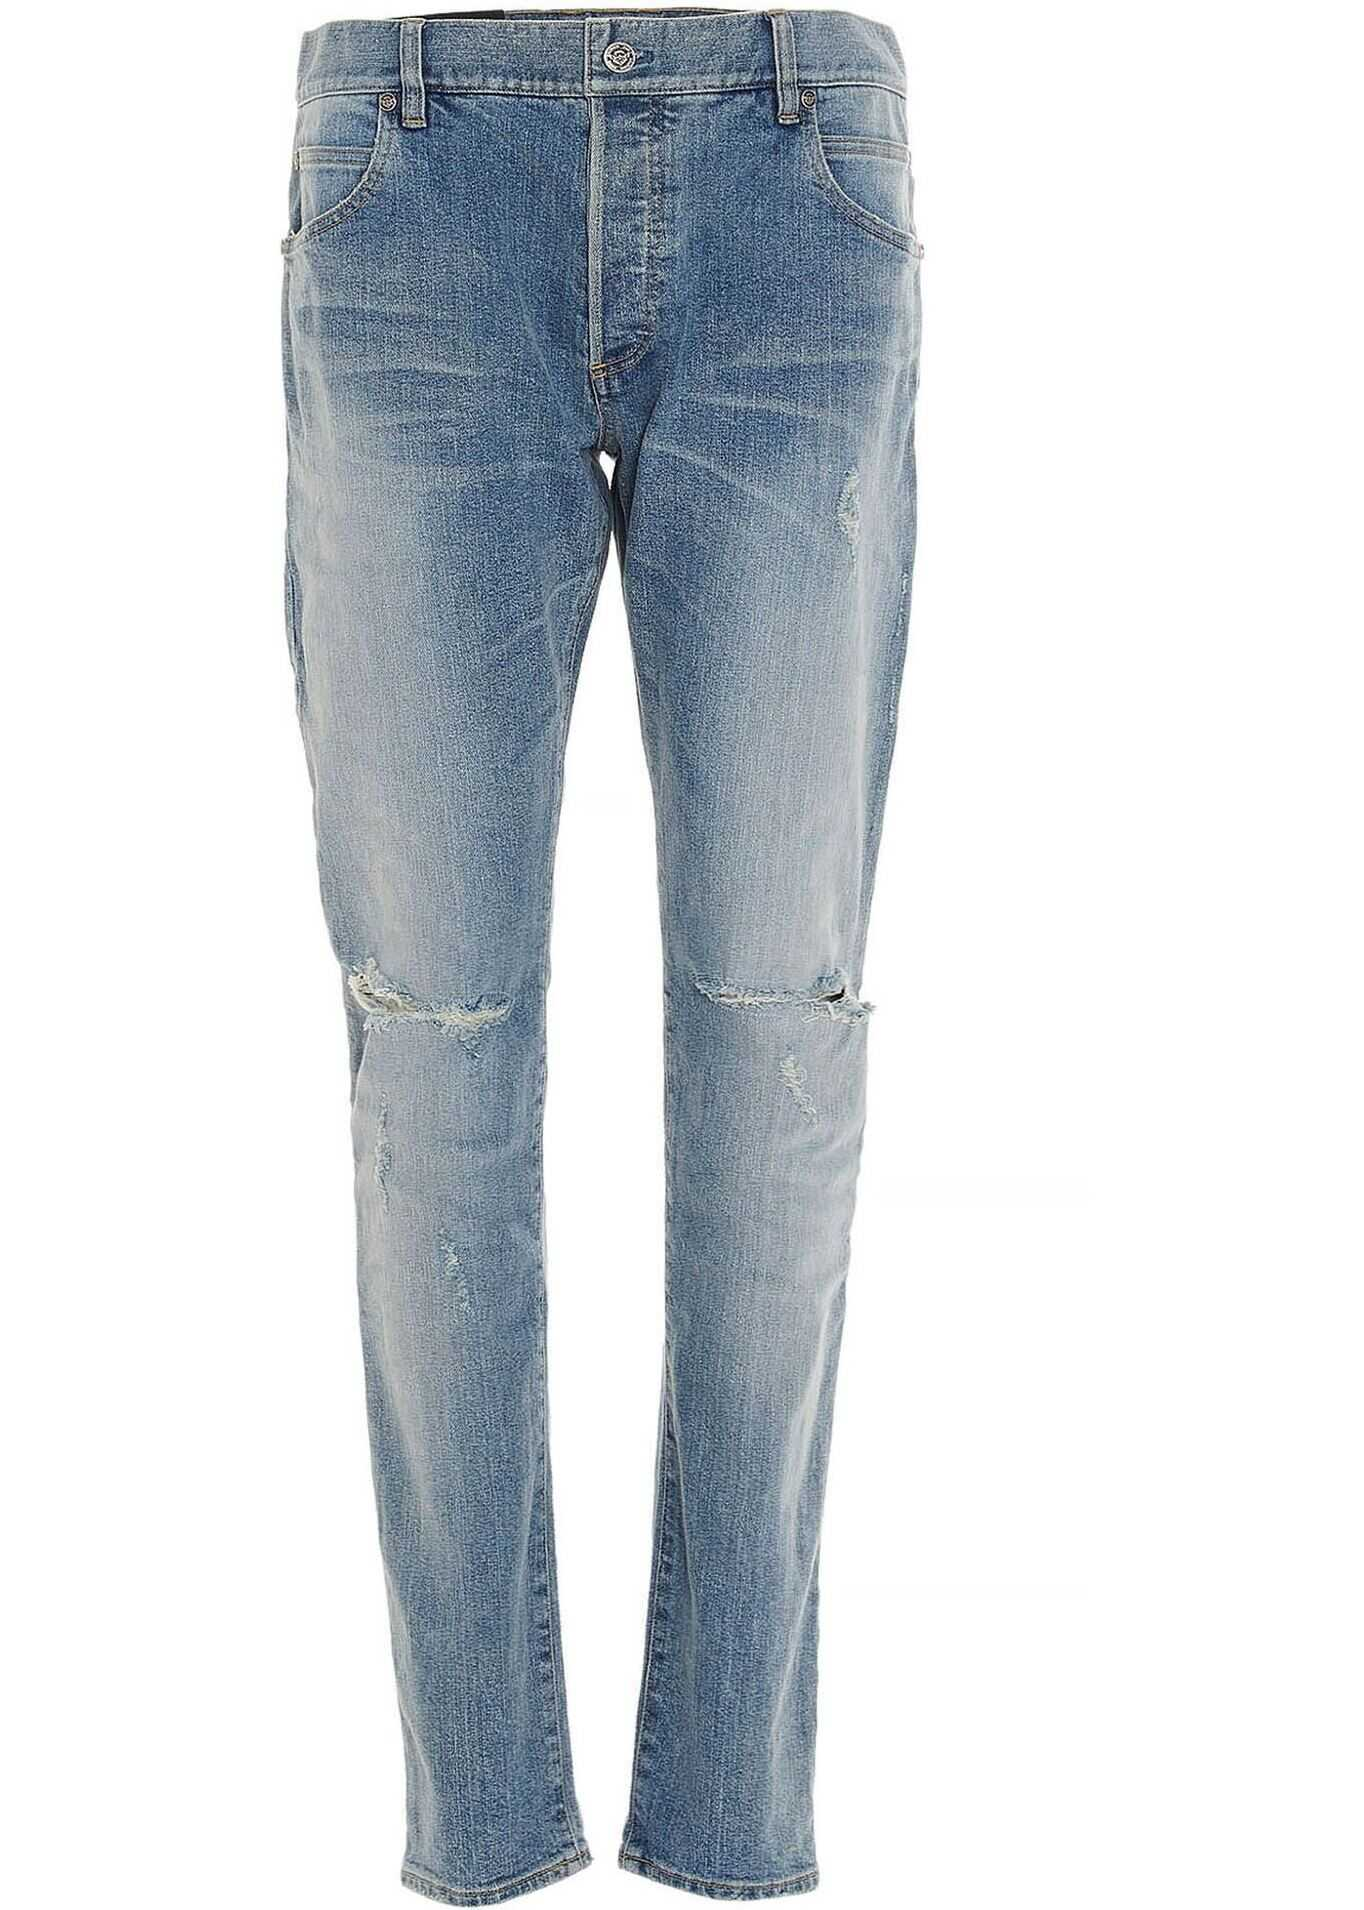 Balmain Ripped Jeans In Light Blue Blue imagine